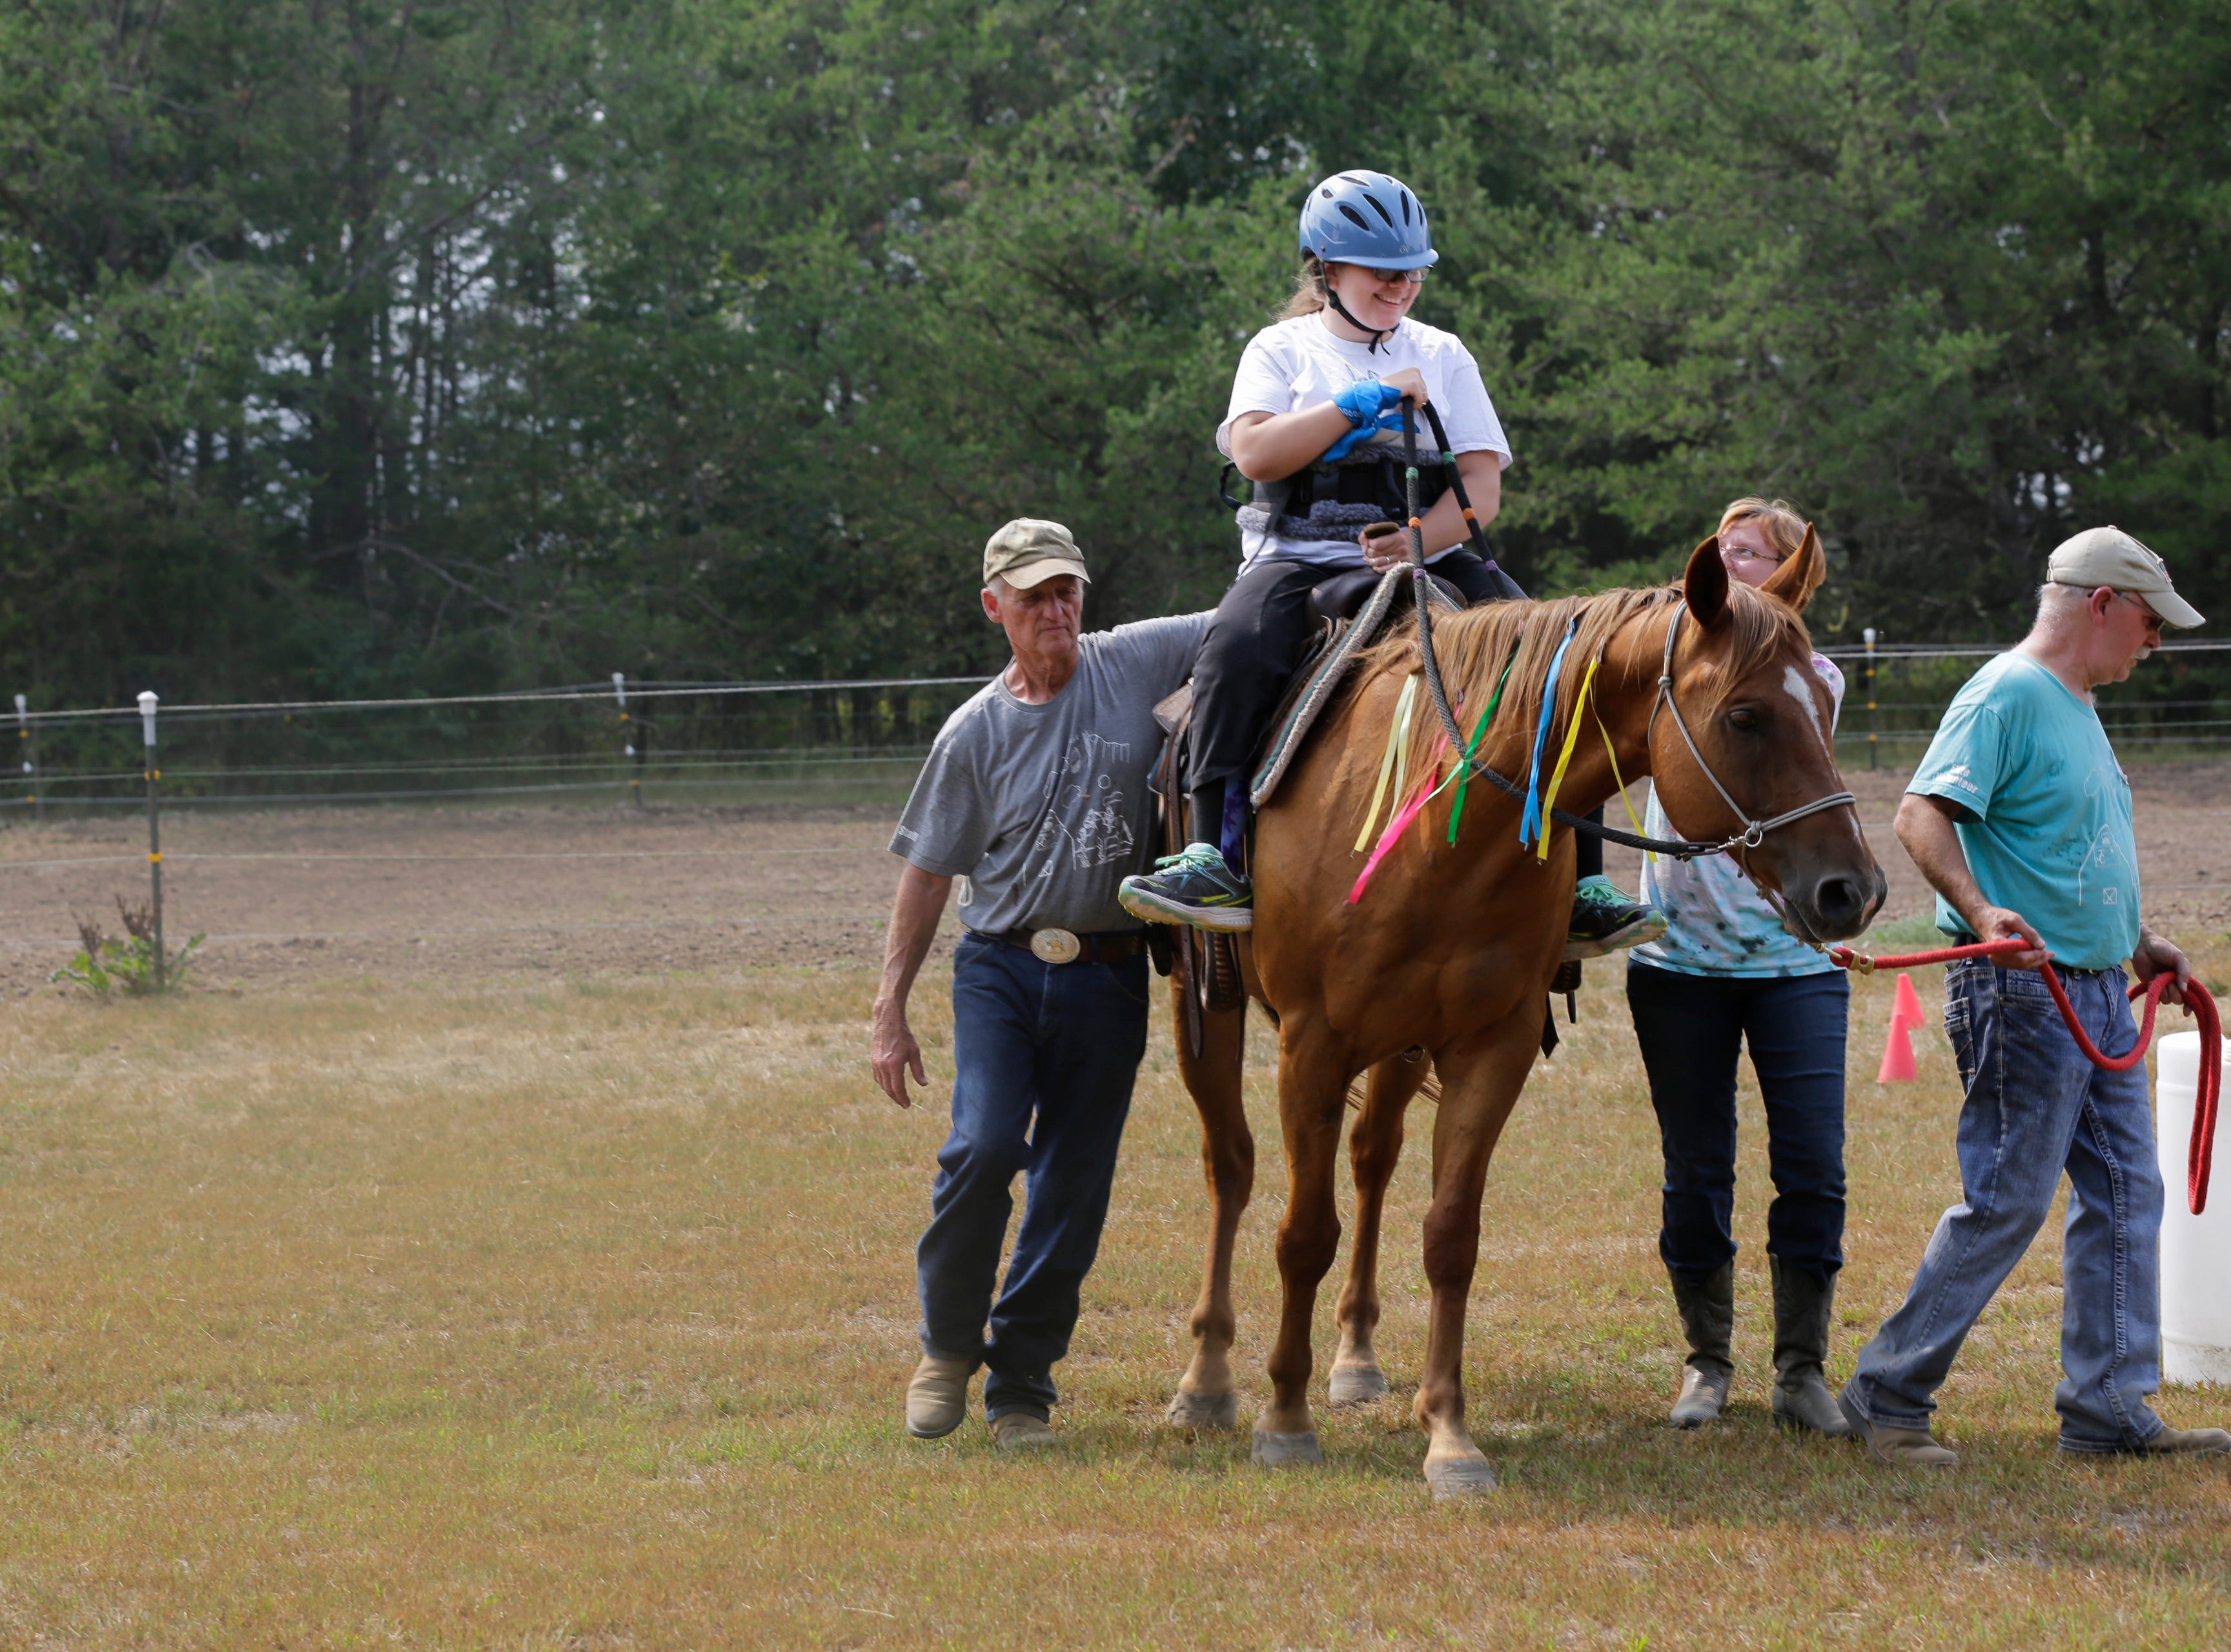 Scedra Stoffel smiles as she rides Alan, her regular horse, during the Jeremiah's Crossing ride-a-thon event Sunday, August 19, 2018 in Babcock, Wis.